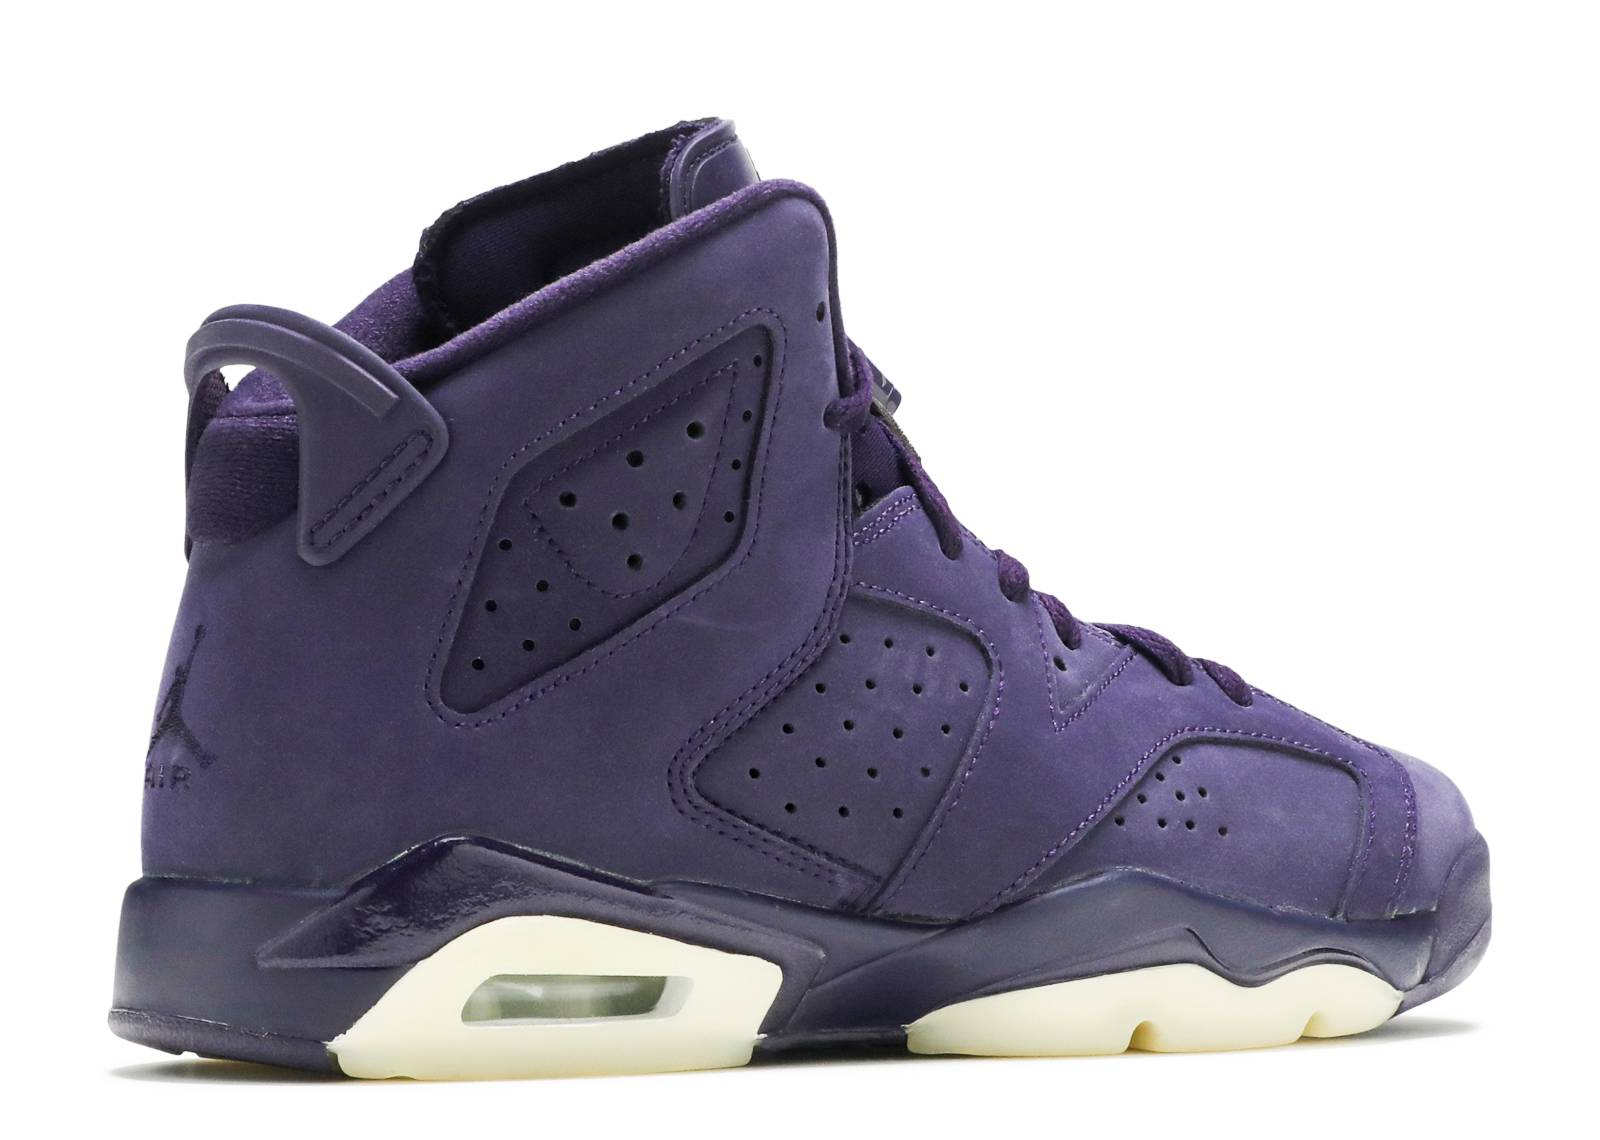 004a9b5dfce0f6 ... promo code air jordan 6 retro gg purple dynasty air jordan 543390 509  purple dynasty purple